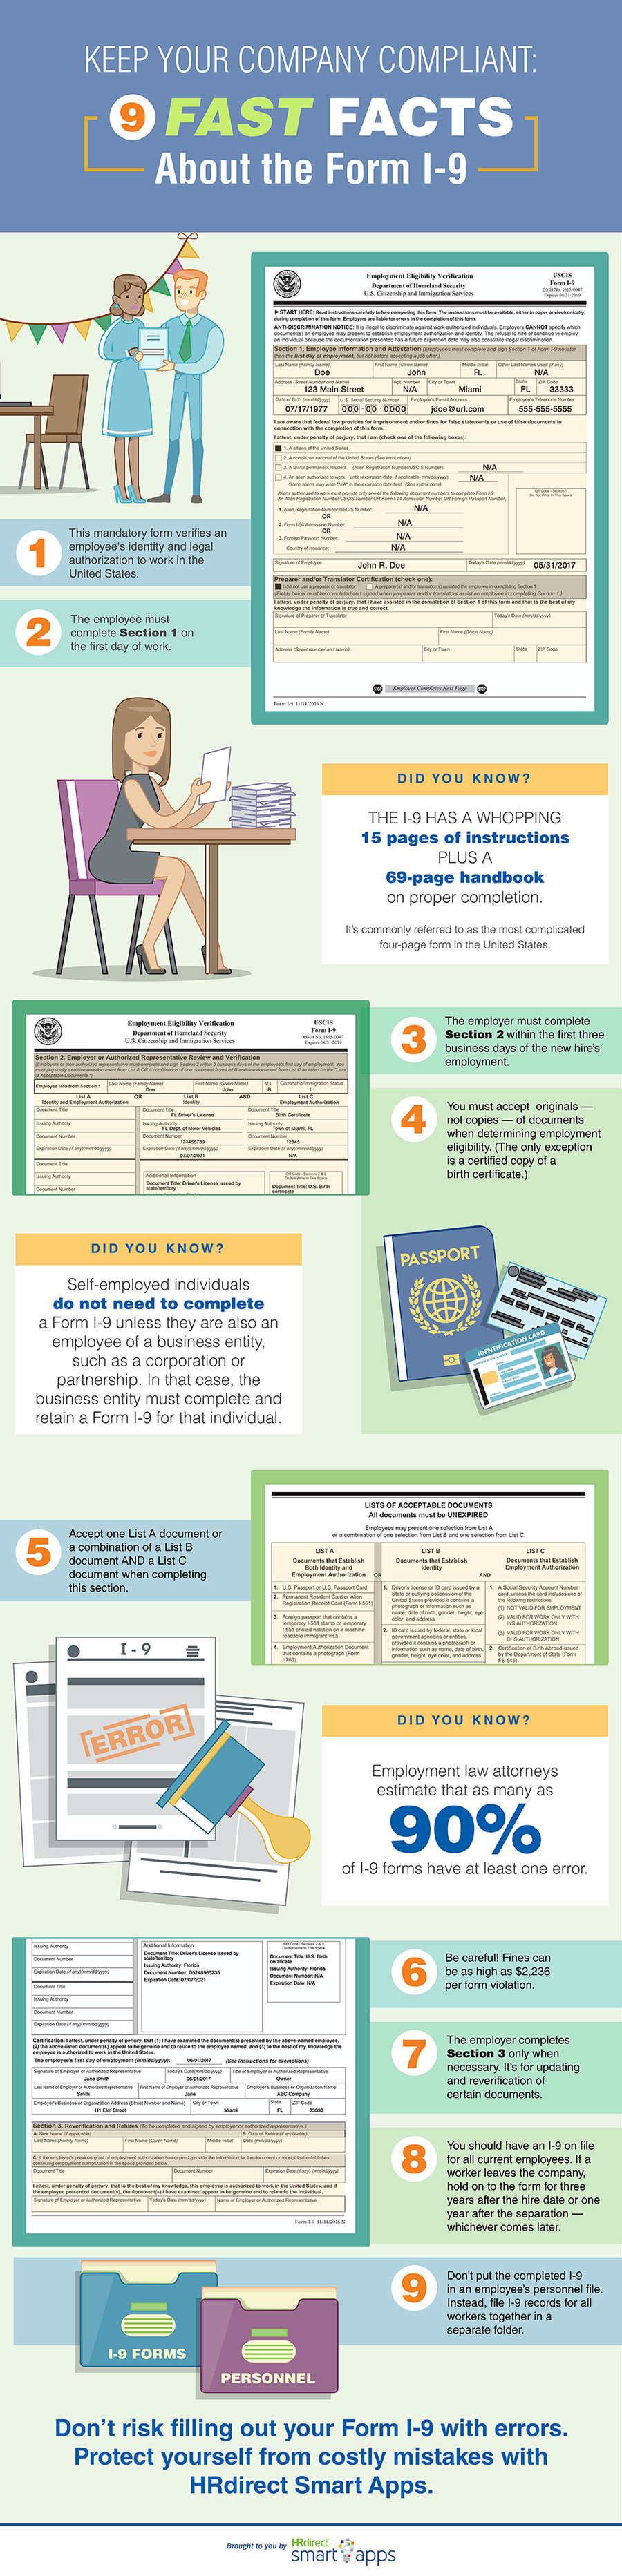 How To Fill Out An I9 Form Correctly Simple Guidelines For Employers